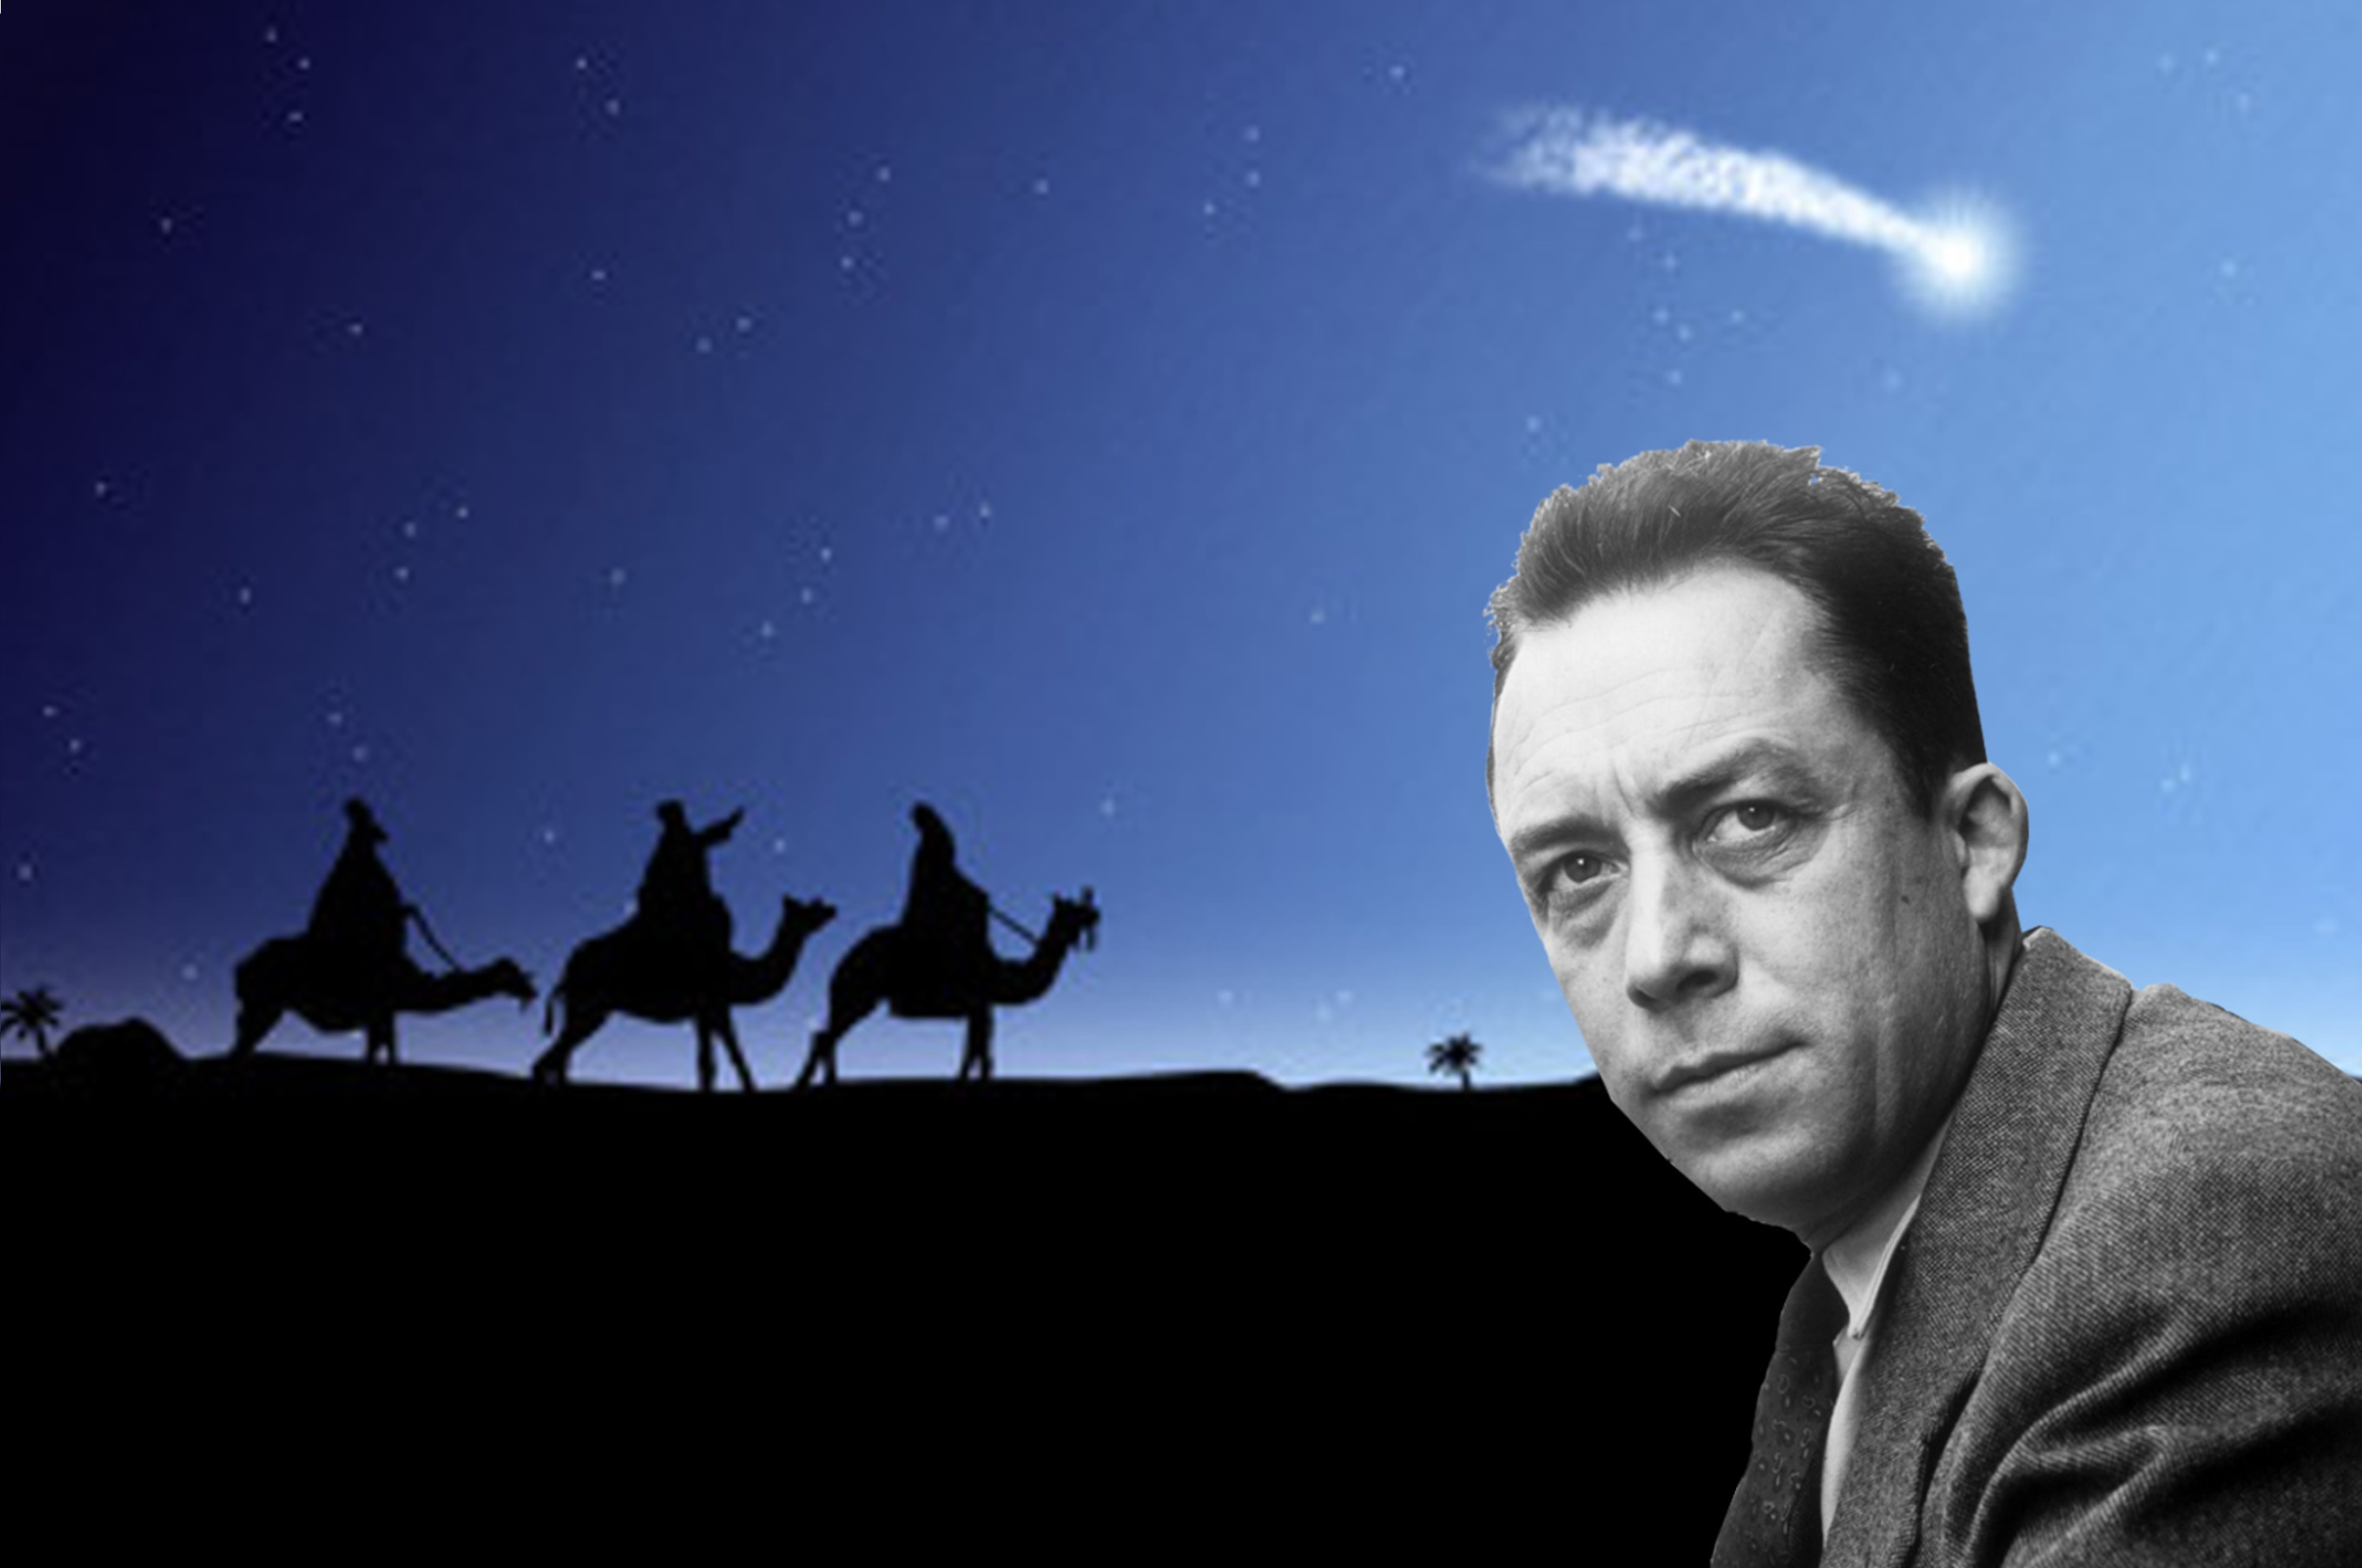 La conversione di Camus come i re Magi